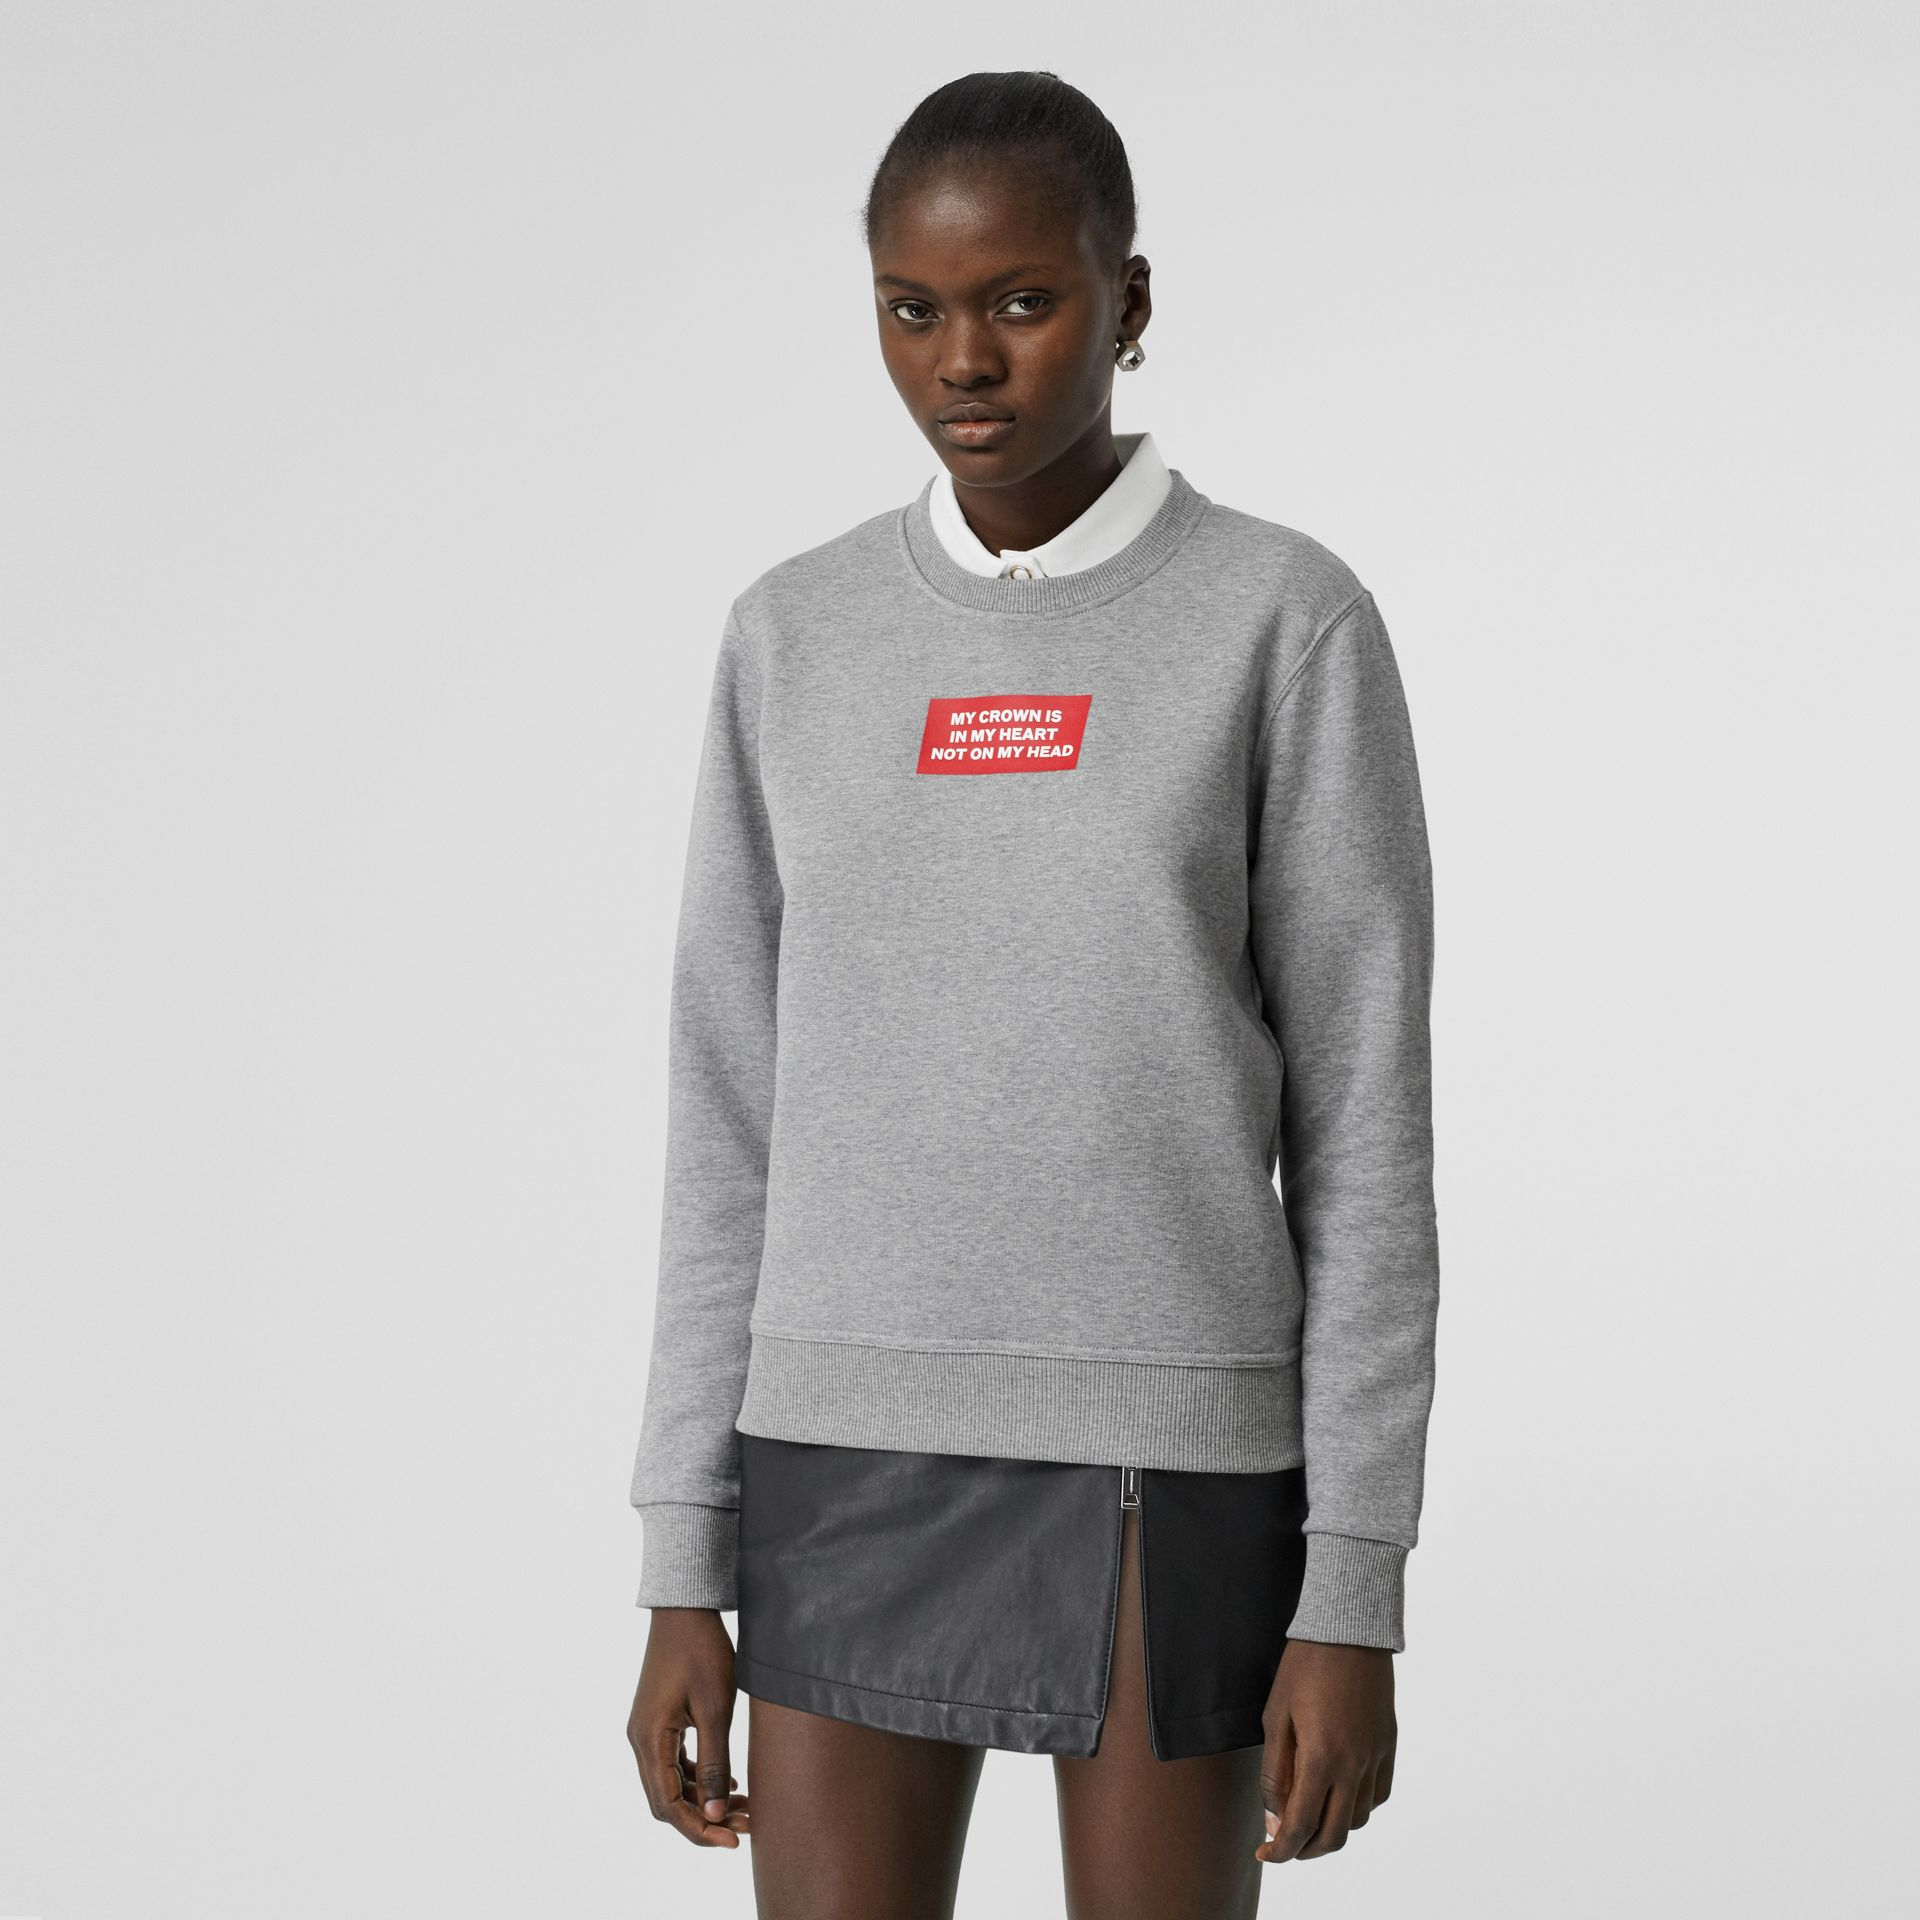 Sweat-shirt en coton avec citation (Camaïeu De Gris Pâles) - Femme | Burberry - photo de la galerie 0